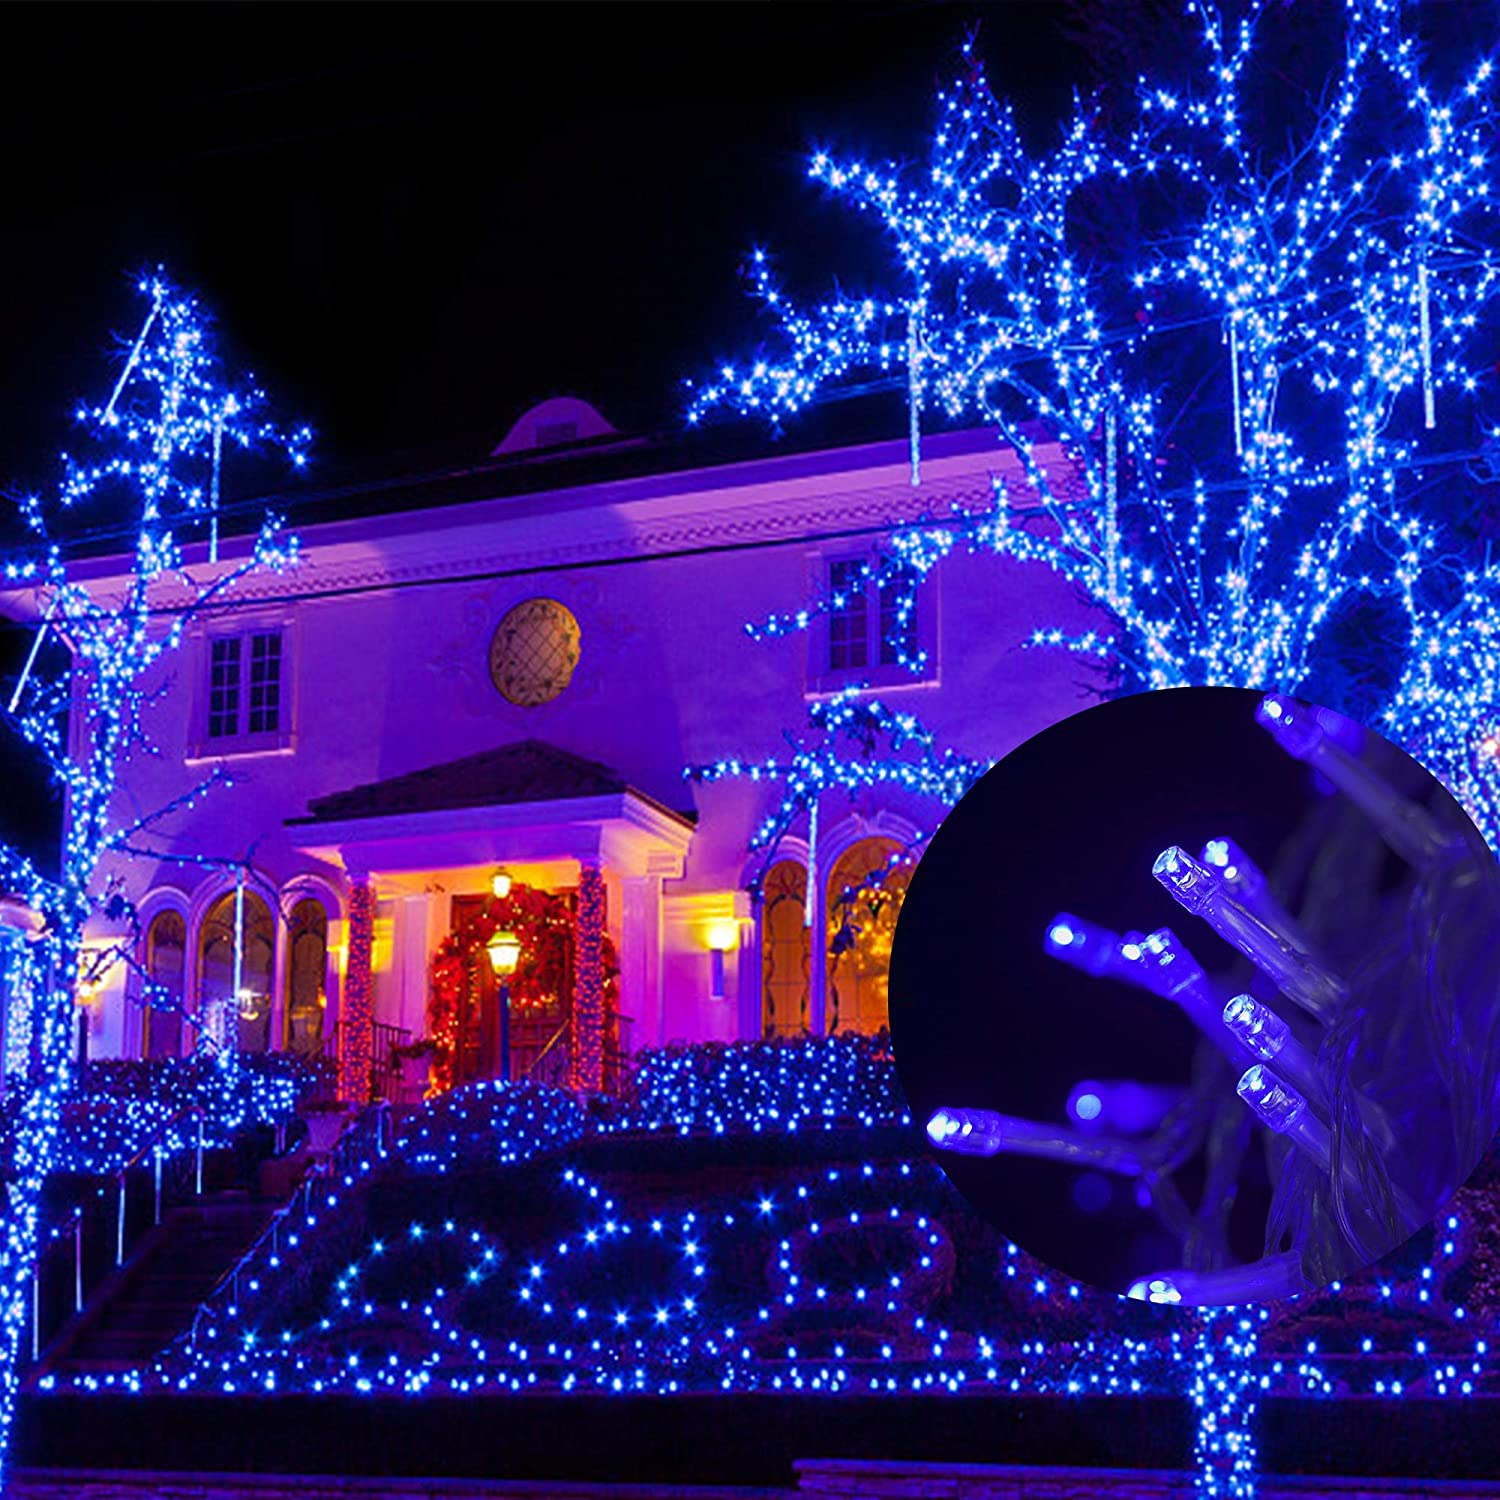 Blue WATERGLIDE 300 LED Indoor Fairy String Lights 98.5FT 8 Lighting Mode Plug in String Waterproof Mini Light for Outdoor Birthday Holiday Christmas Wedding Party Bedroom Decorations